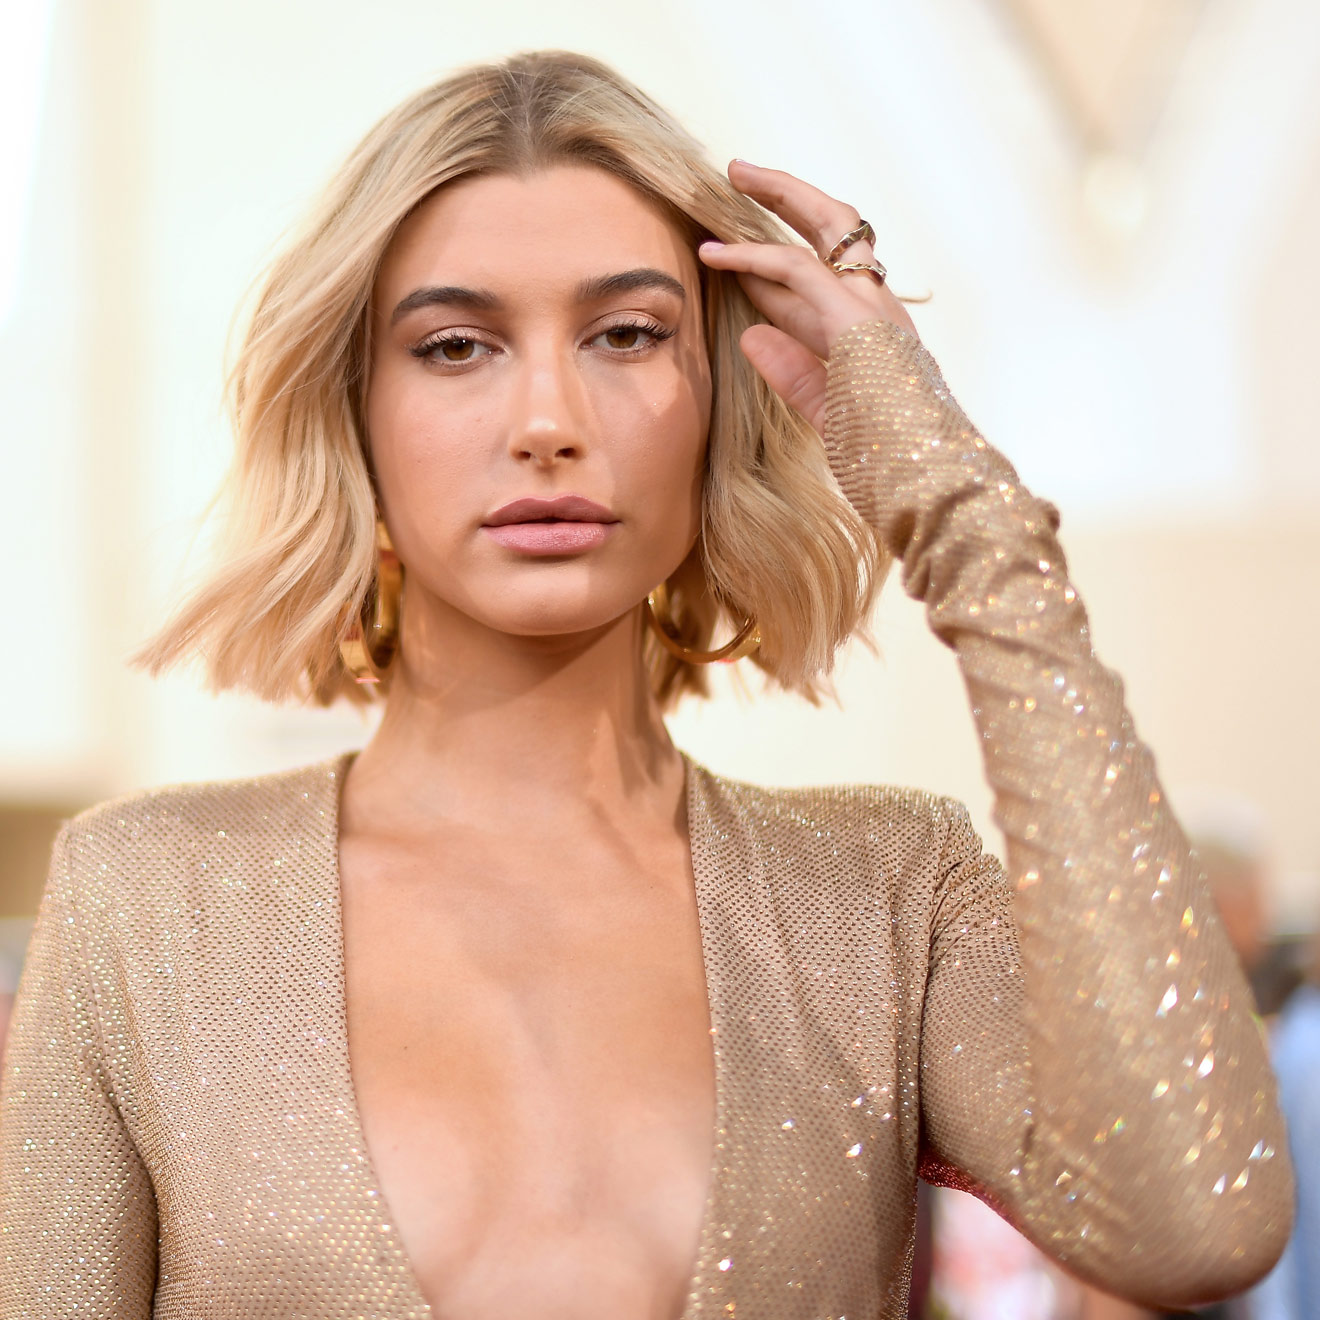 Hailey Bieber (22) hat auf Instagram 19 Millionen Follower.